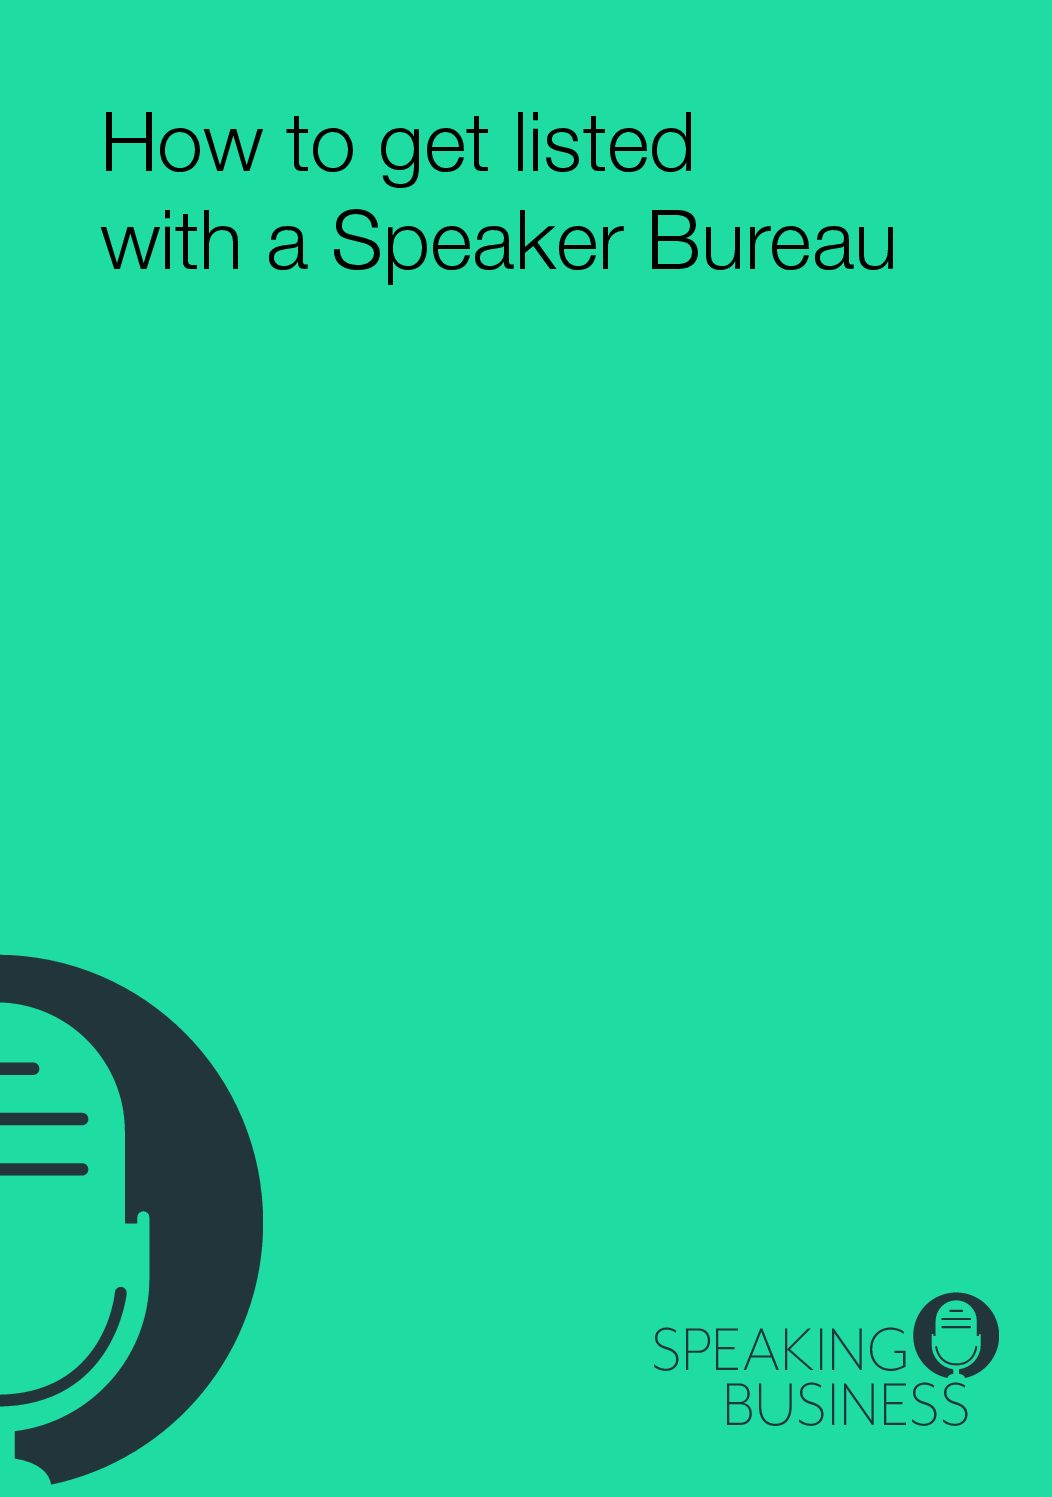 How to get listed with a Speaker Bureau